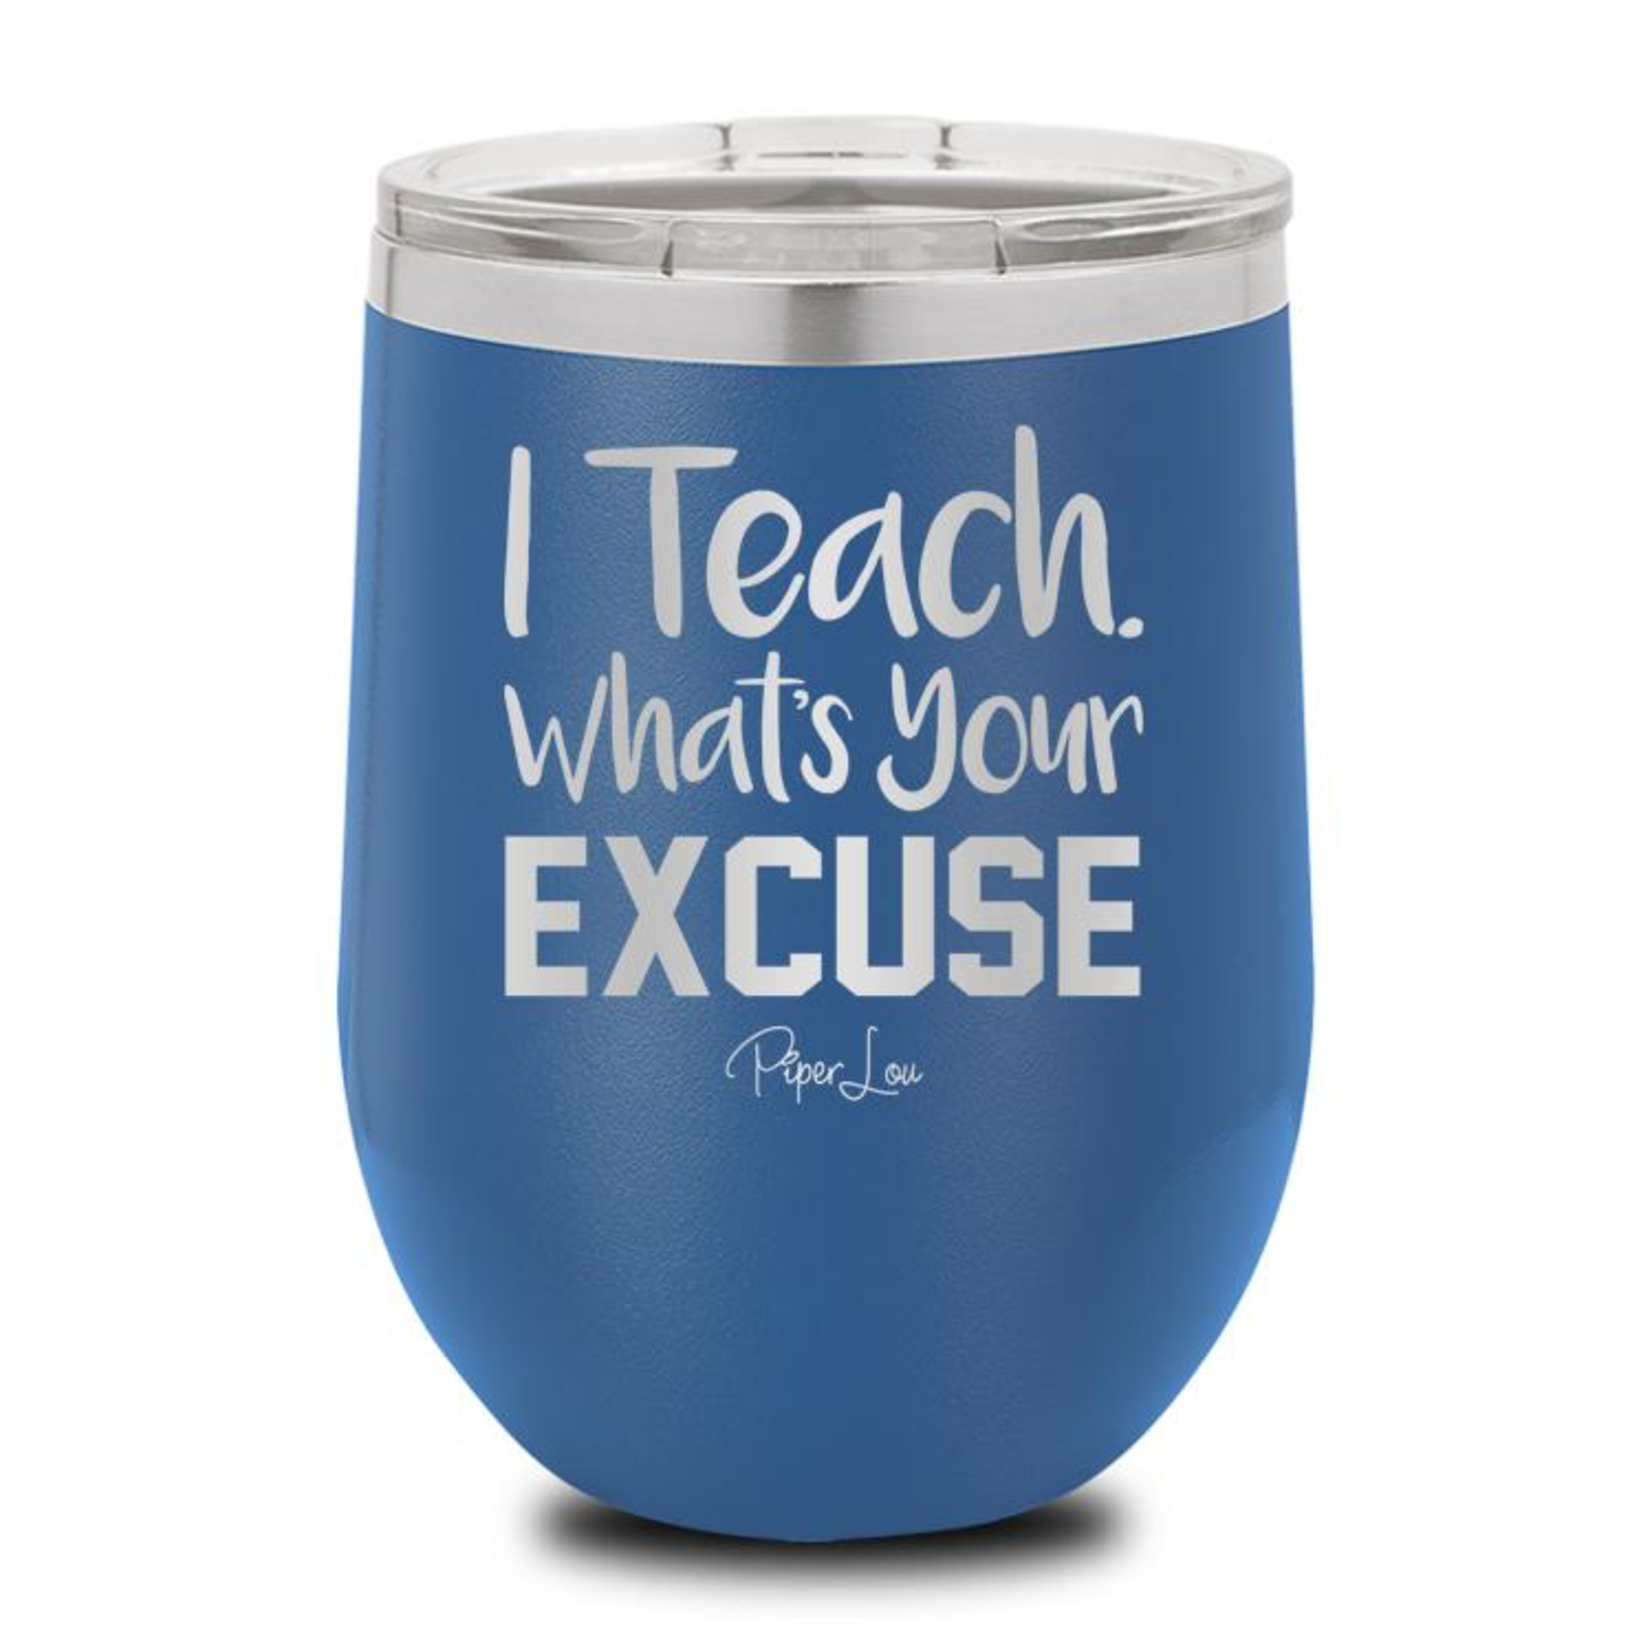 Piper Lou Teach Whats Your Excuse Wine Cup, sale item, Was $29.99